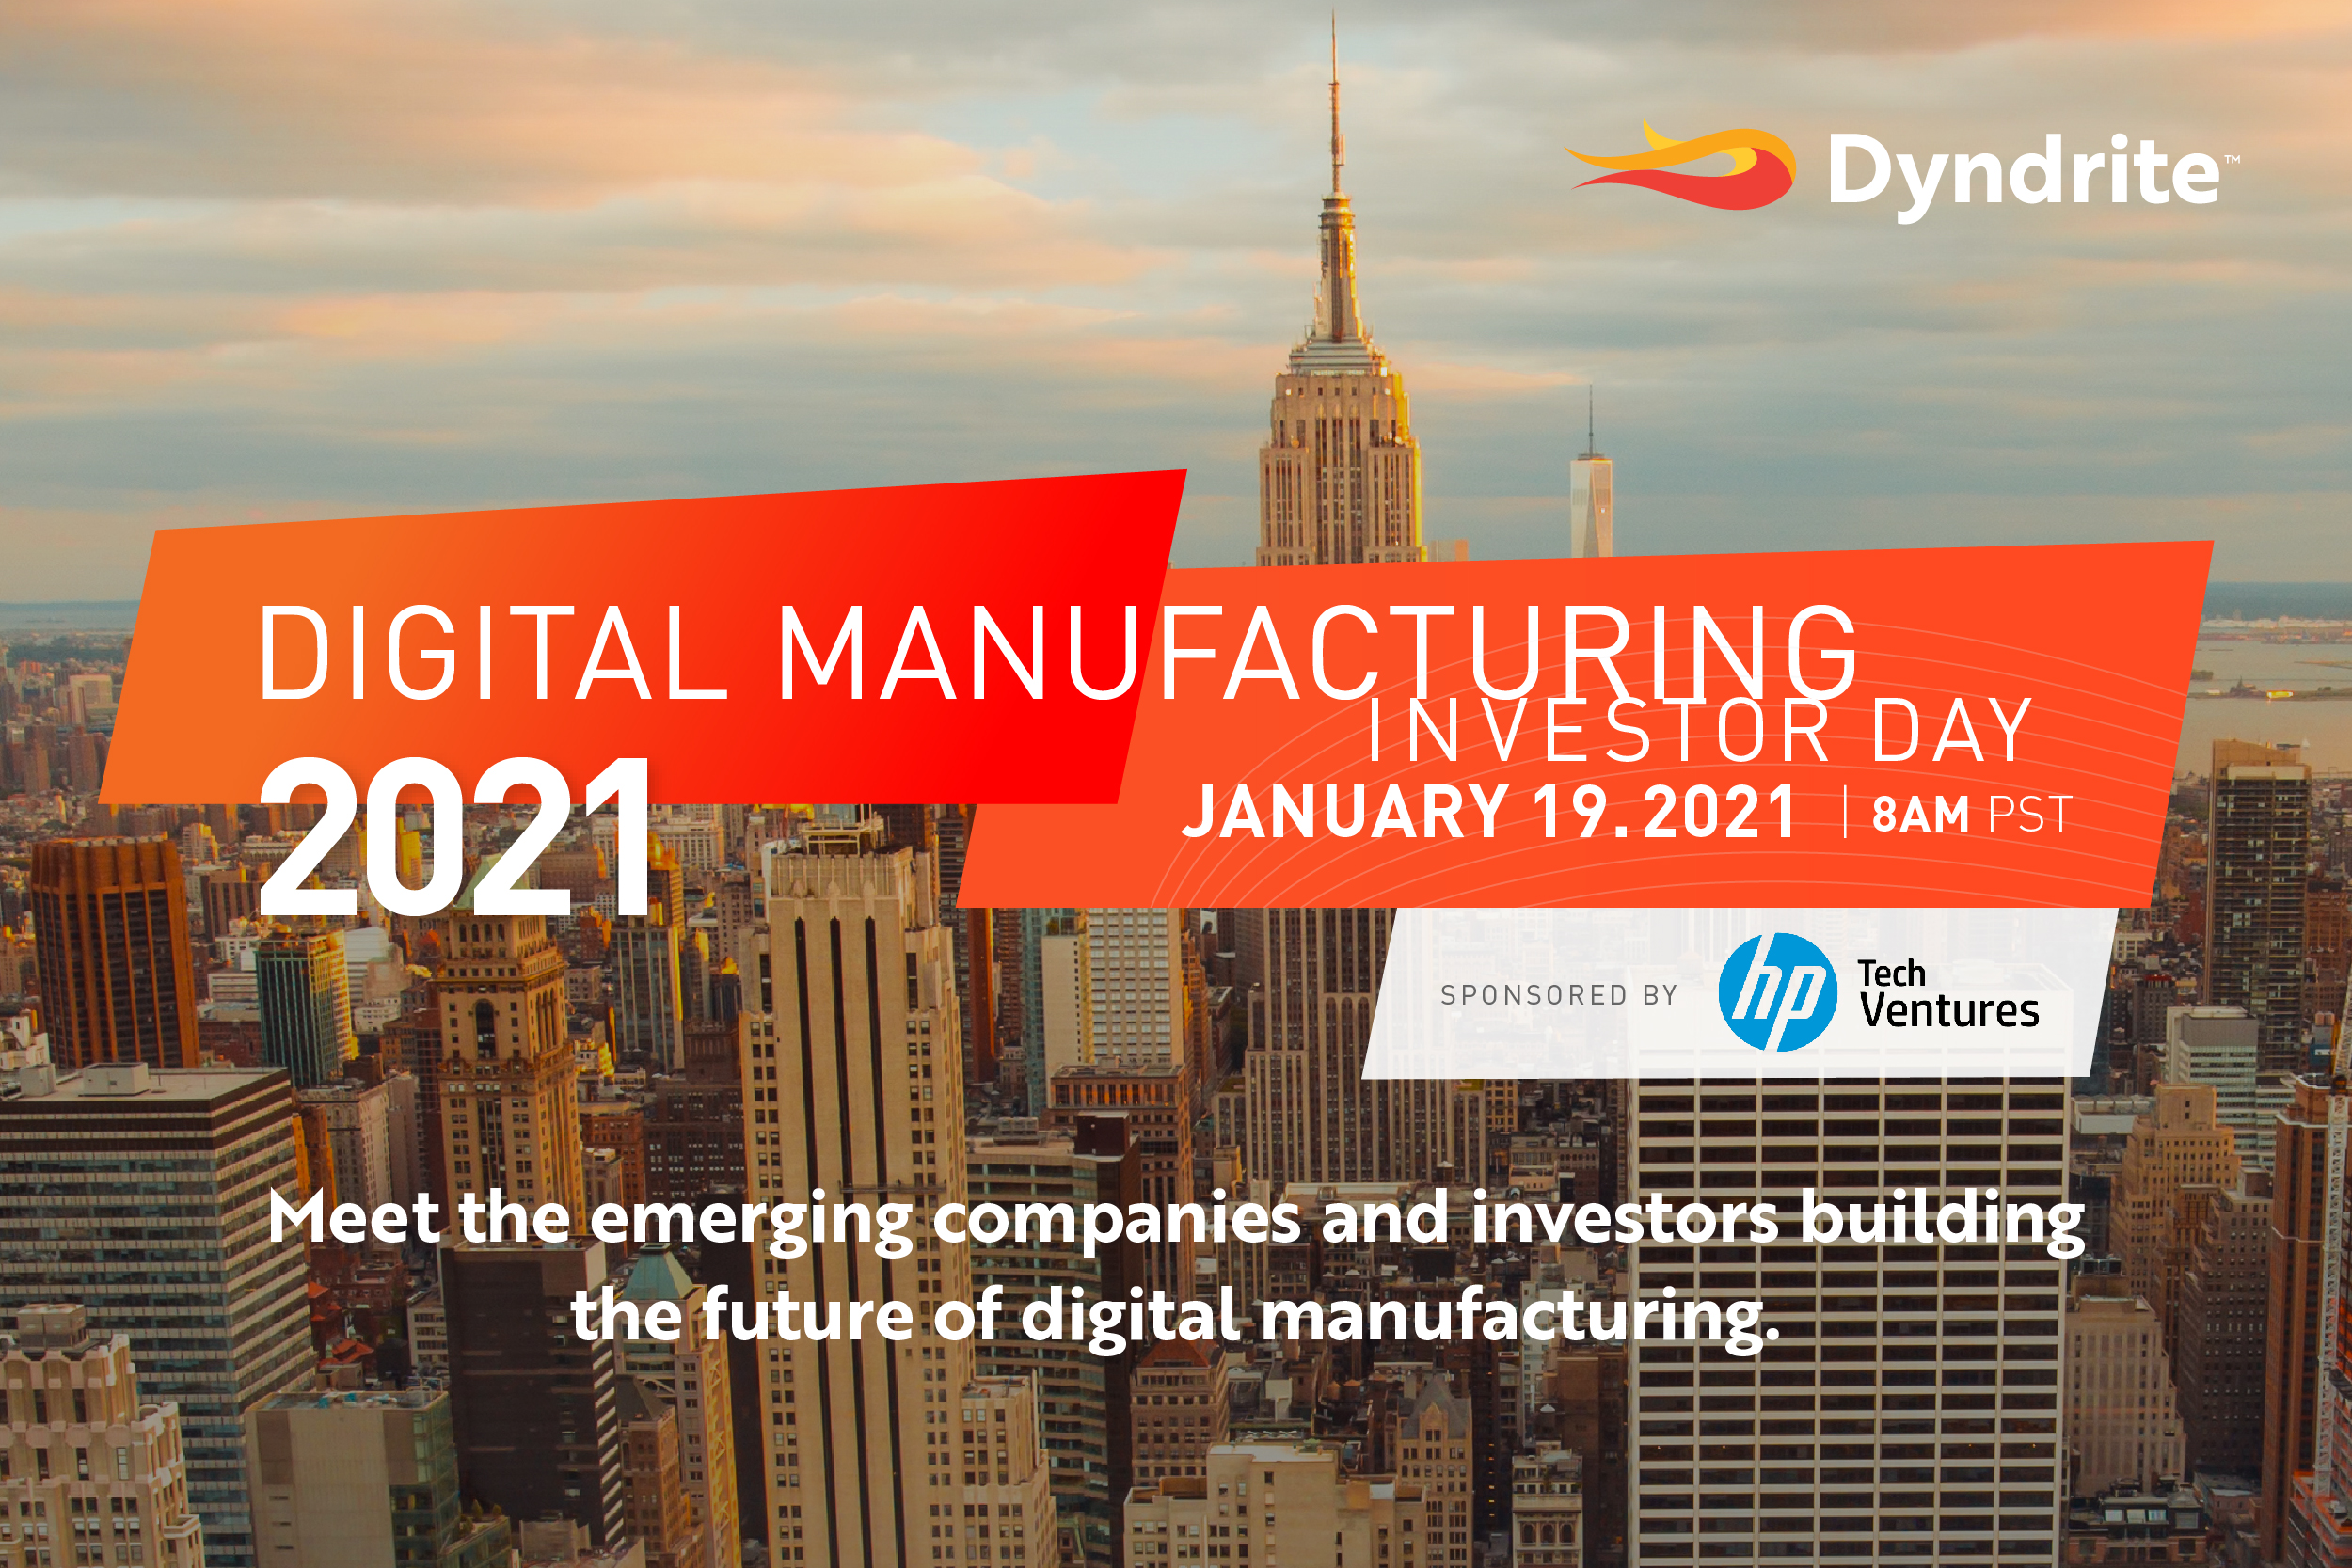 Announcing Digital Manufacturing Investor Day 2021